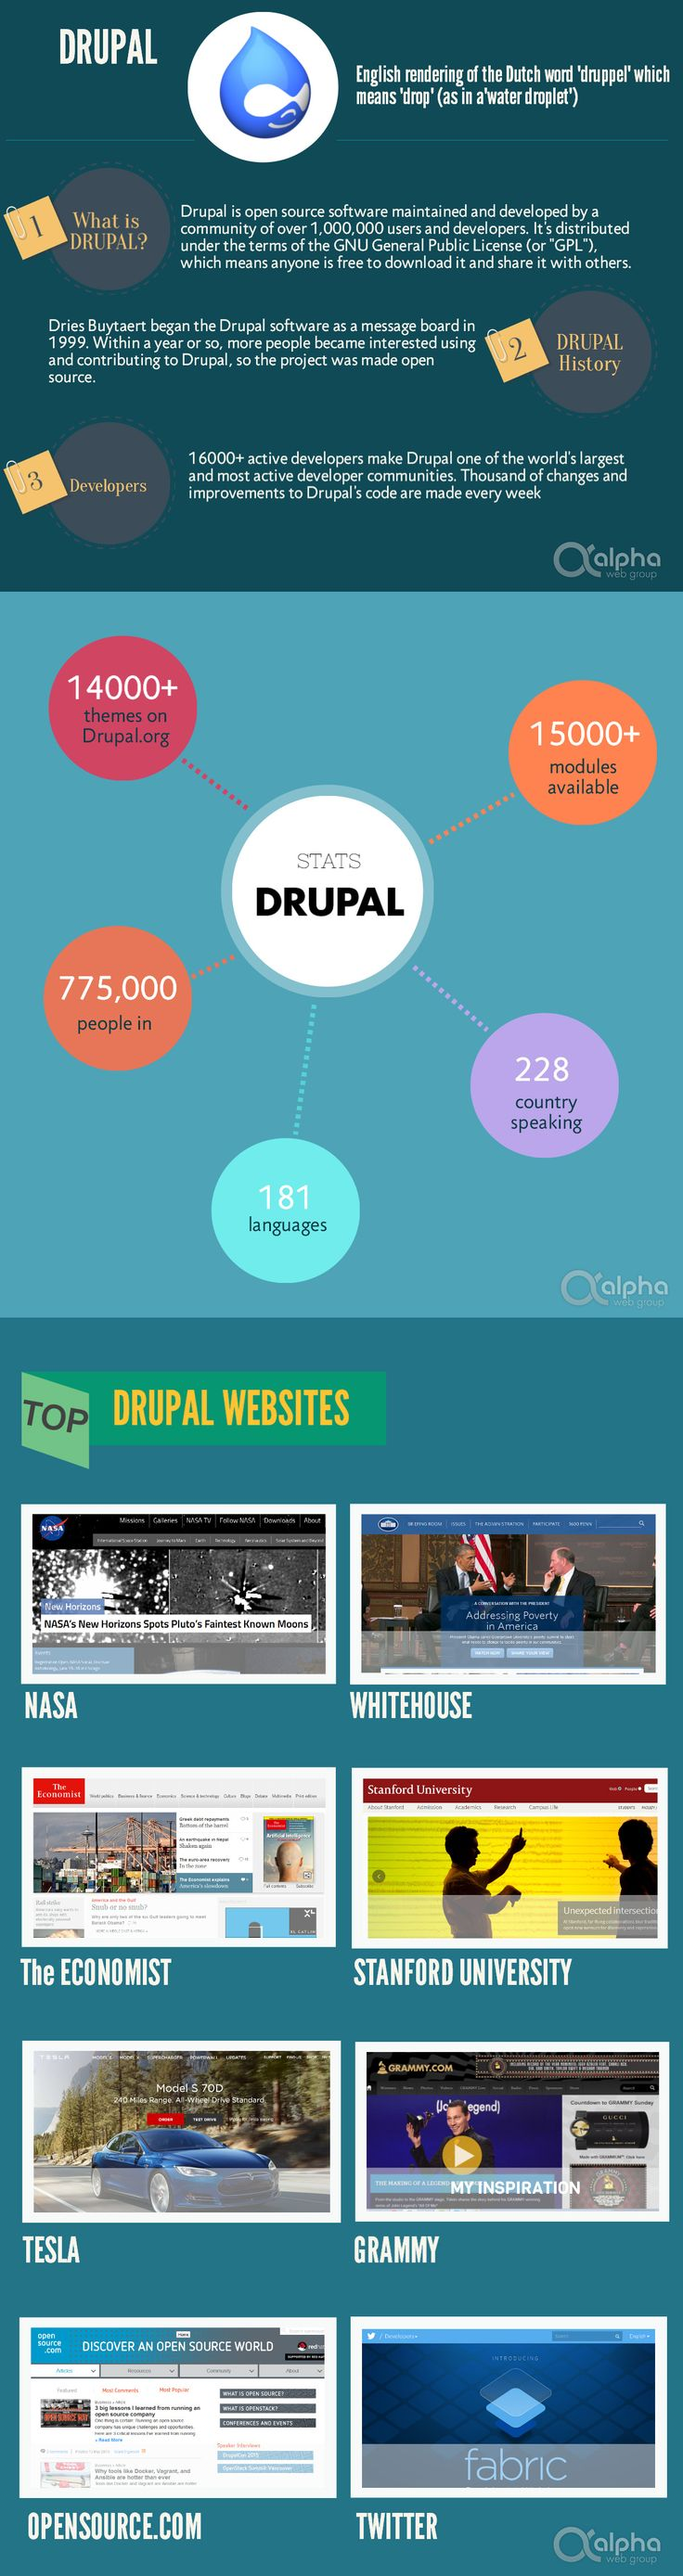 31 best drupal 8 images on pinterest drupal cheat sheets and coding why choose drupal drupal is the leading open source cms for developing sophisticated flexible baditri Images